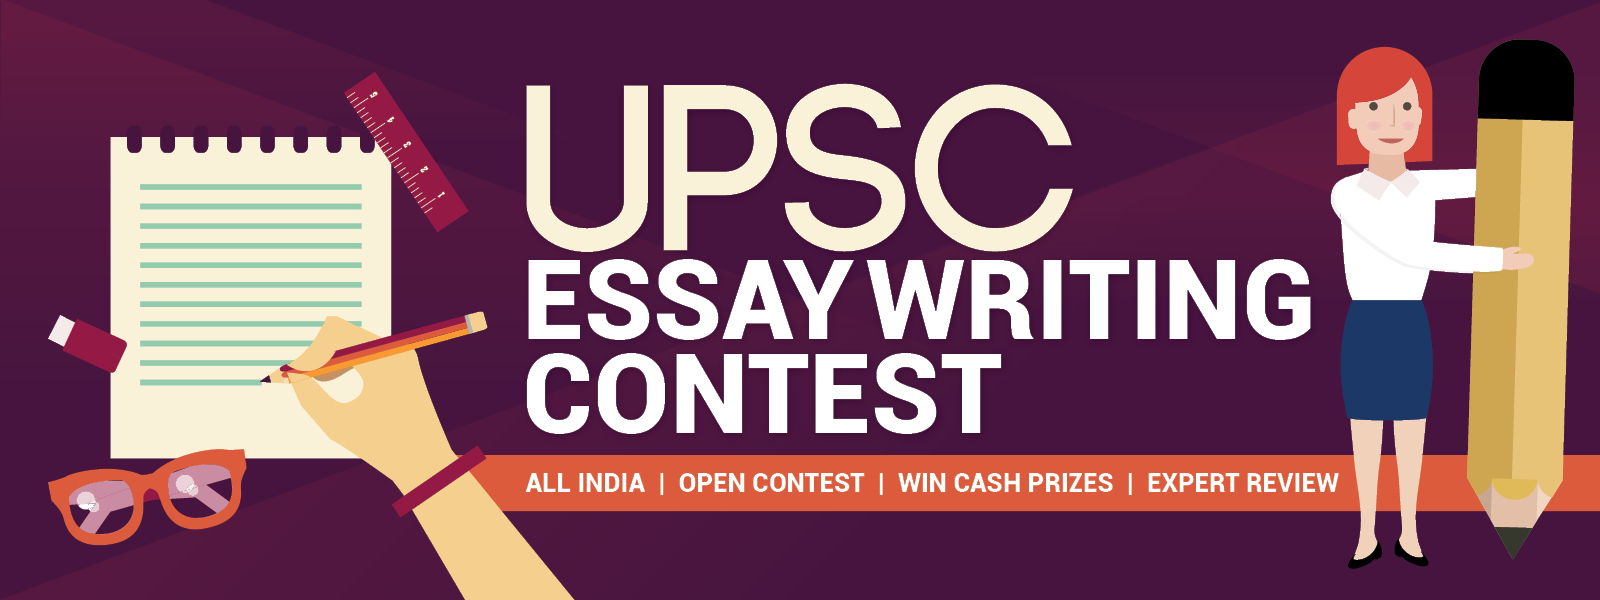 online essay writing competitions india Dna replication to write a bumper sticker essay writing competition online in india words help in writing essay social science phd thesis.